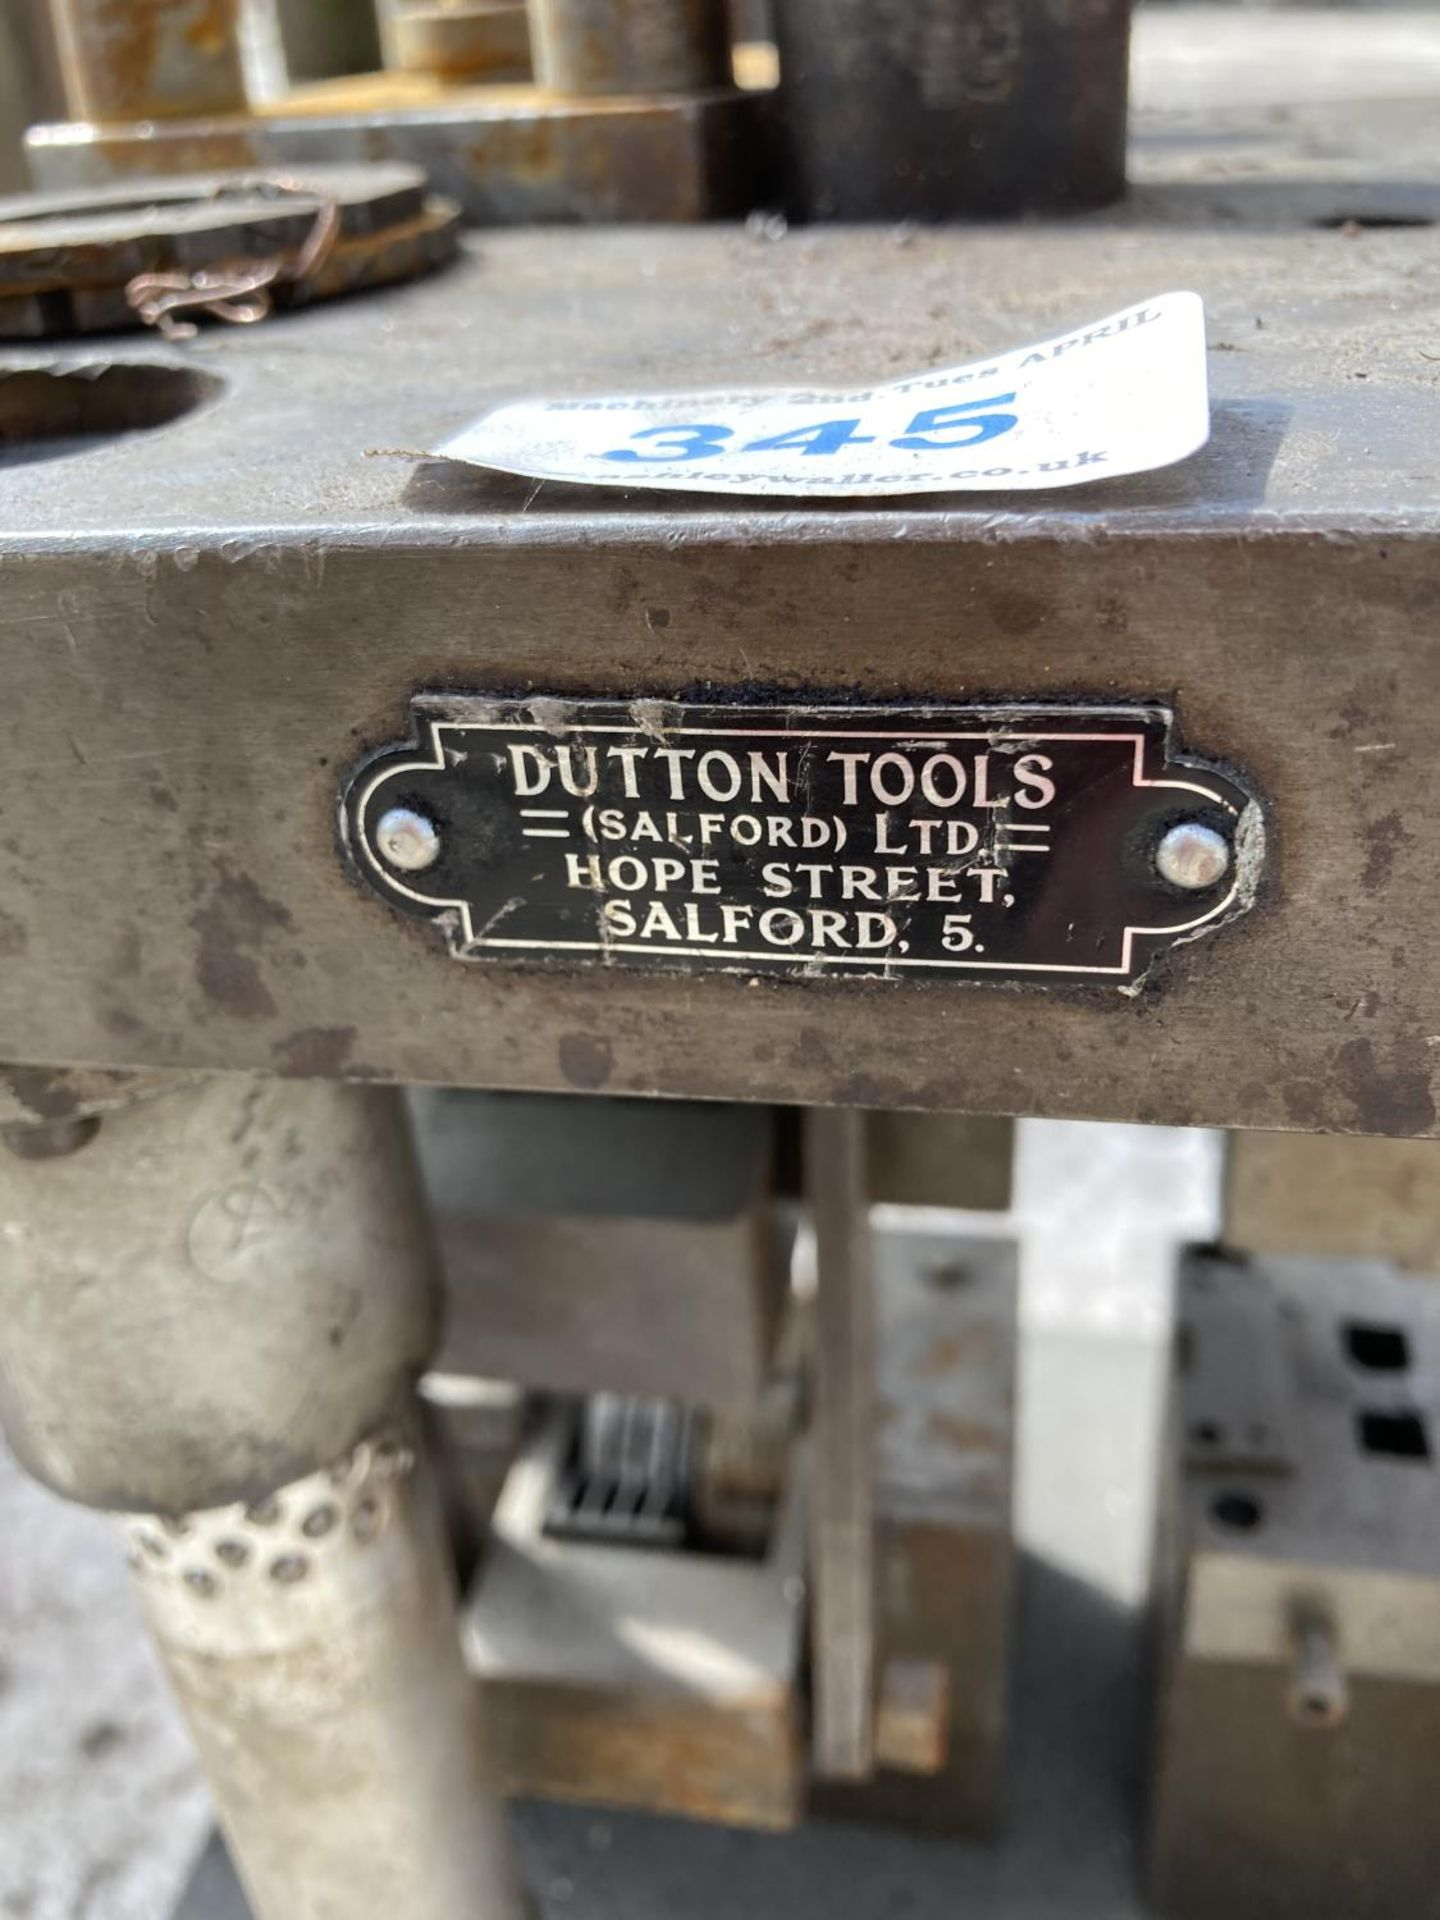 A DUTTON TOOLS SALFORD DATE STAMPER NO VAT - Image 2 of 2